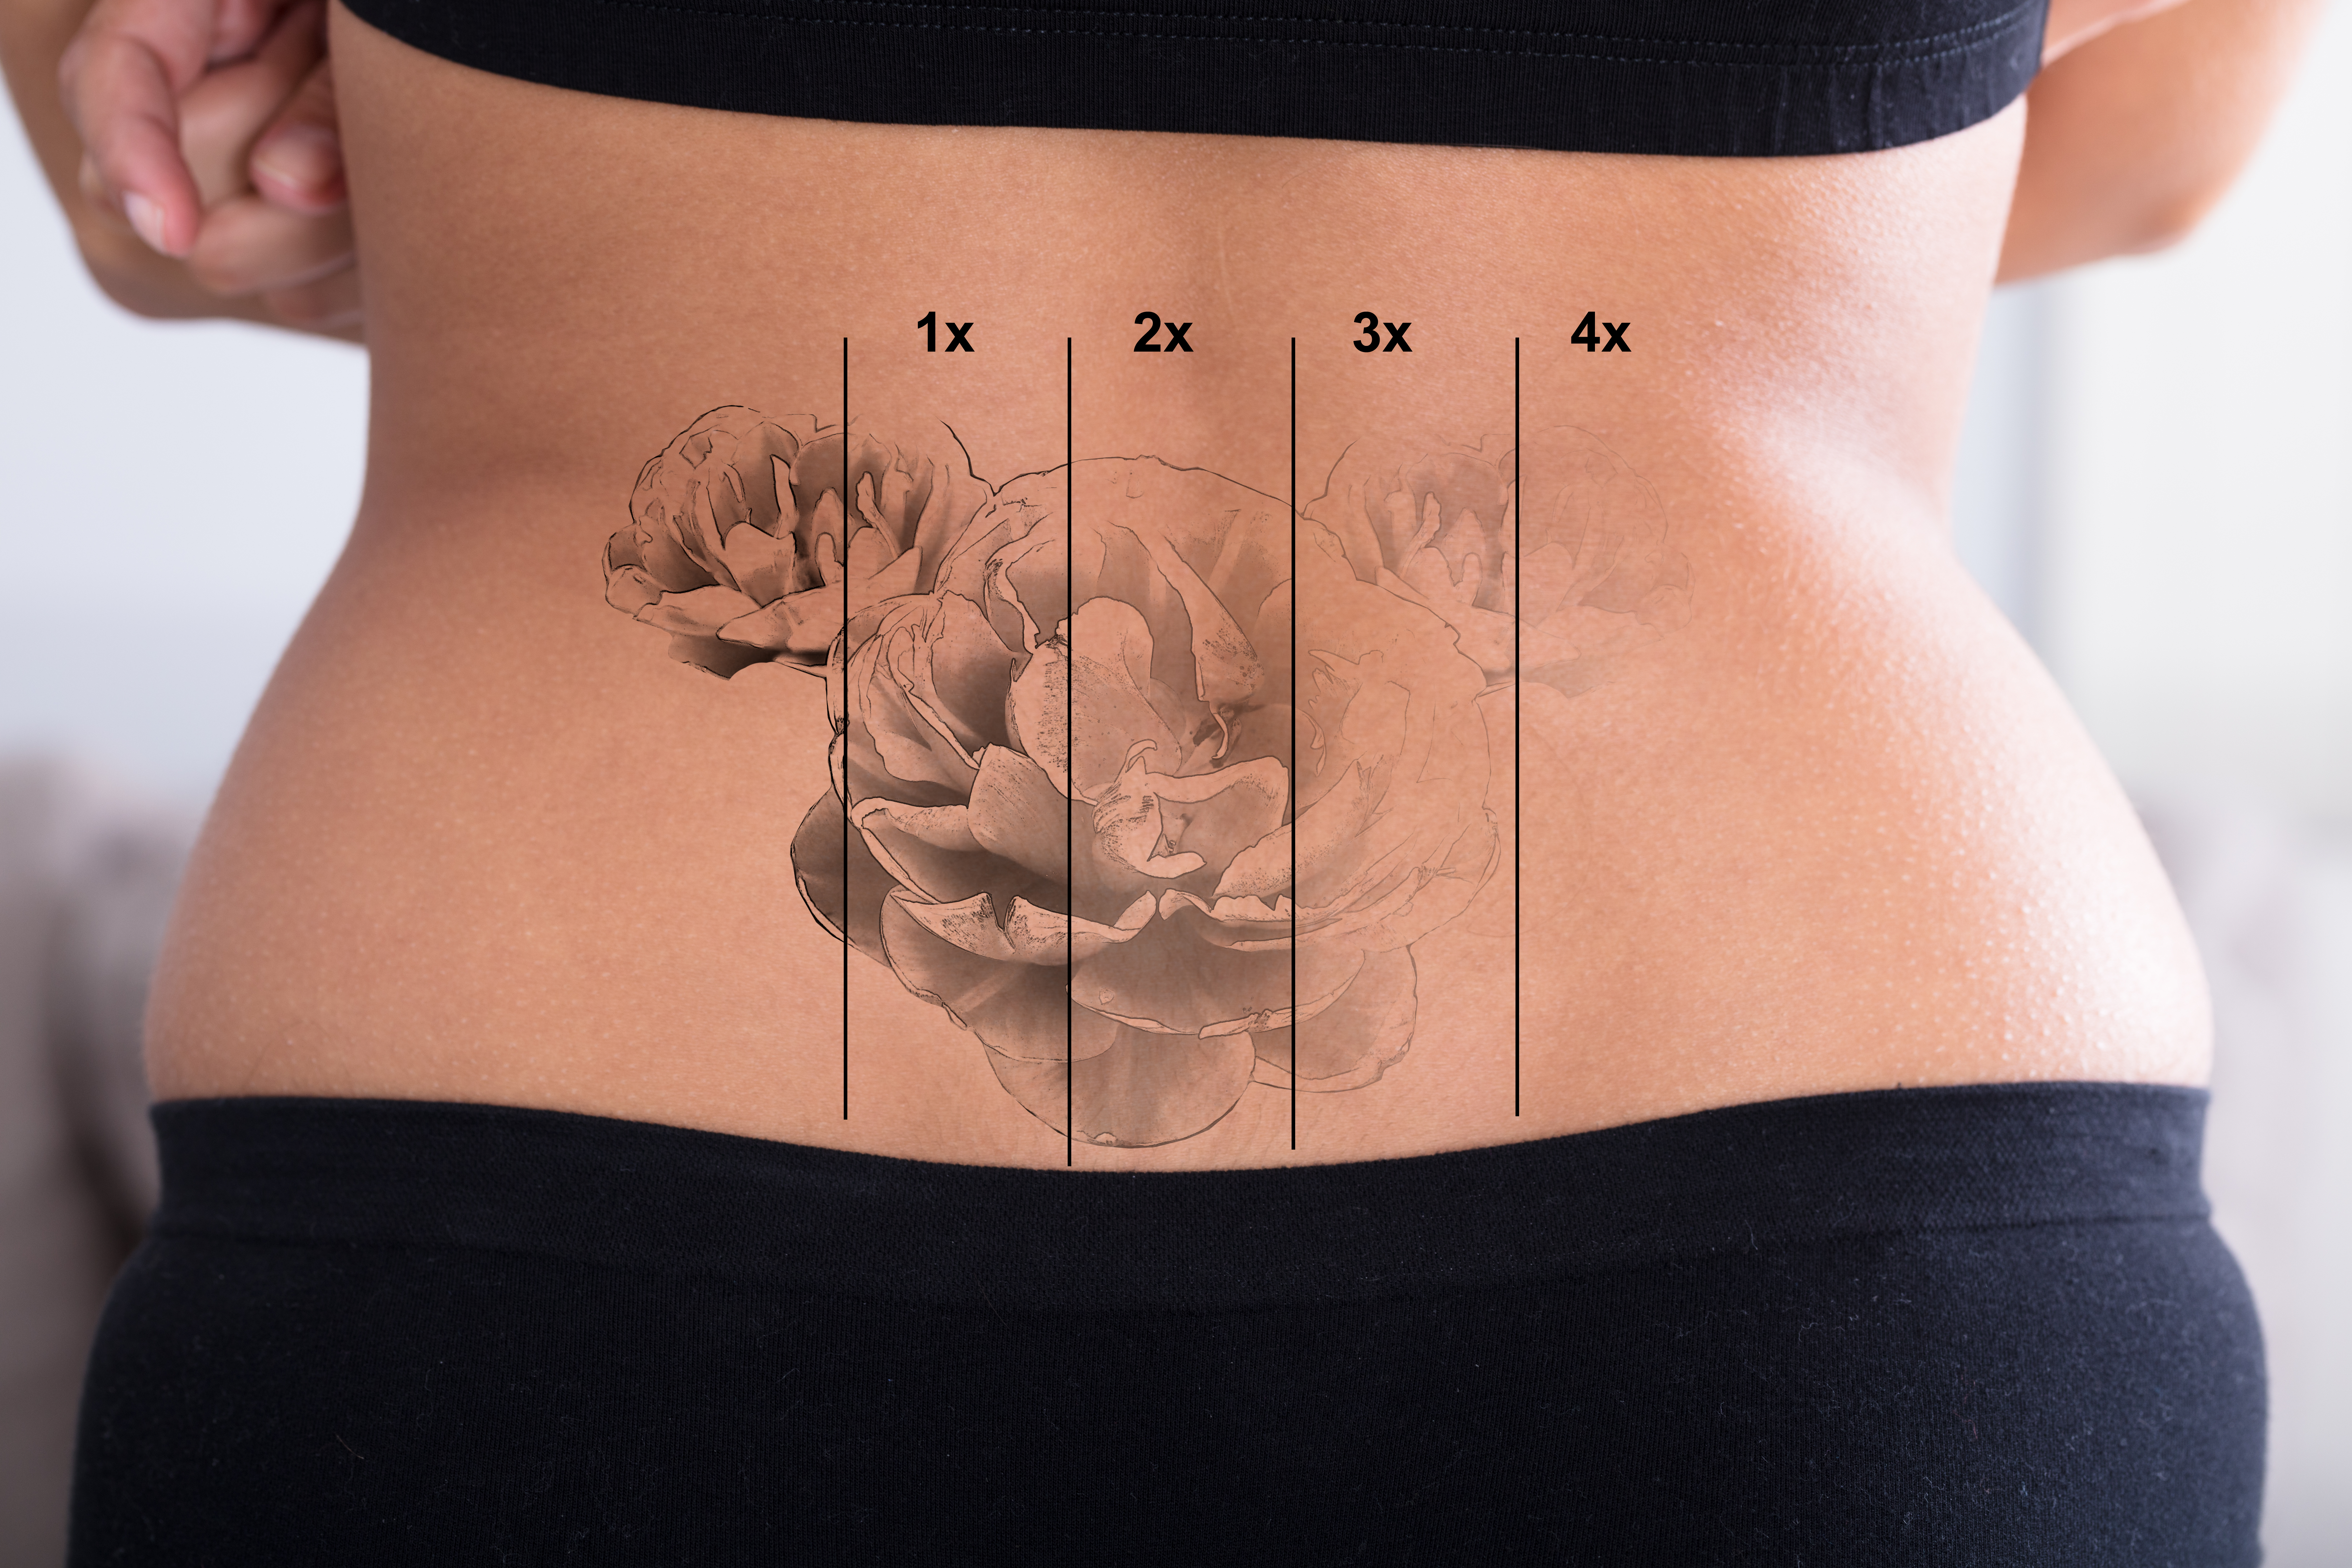 Tattoo Removal Service Photo3